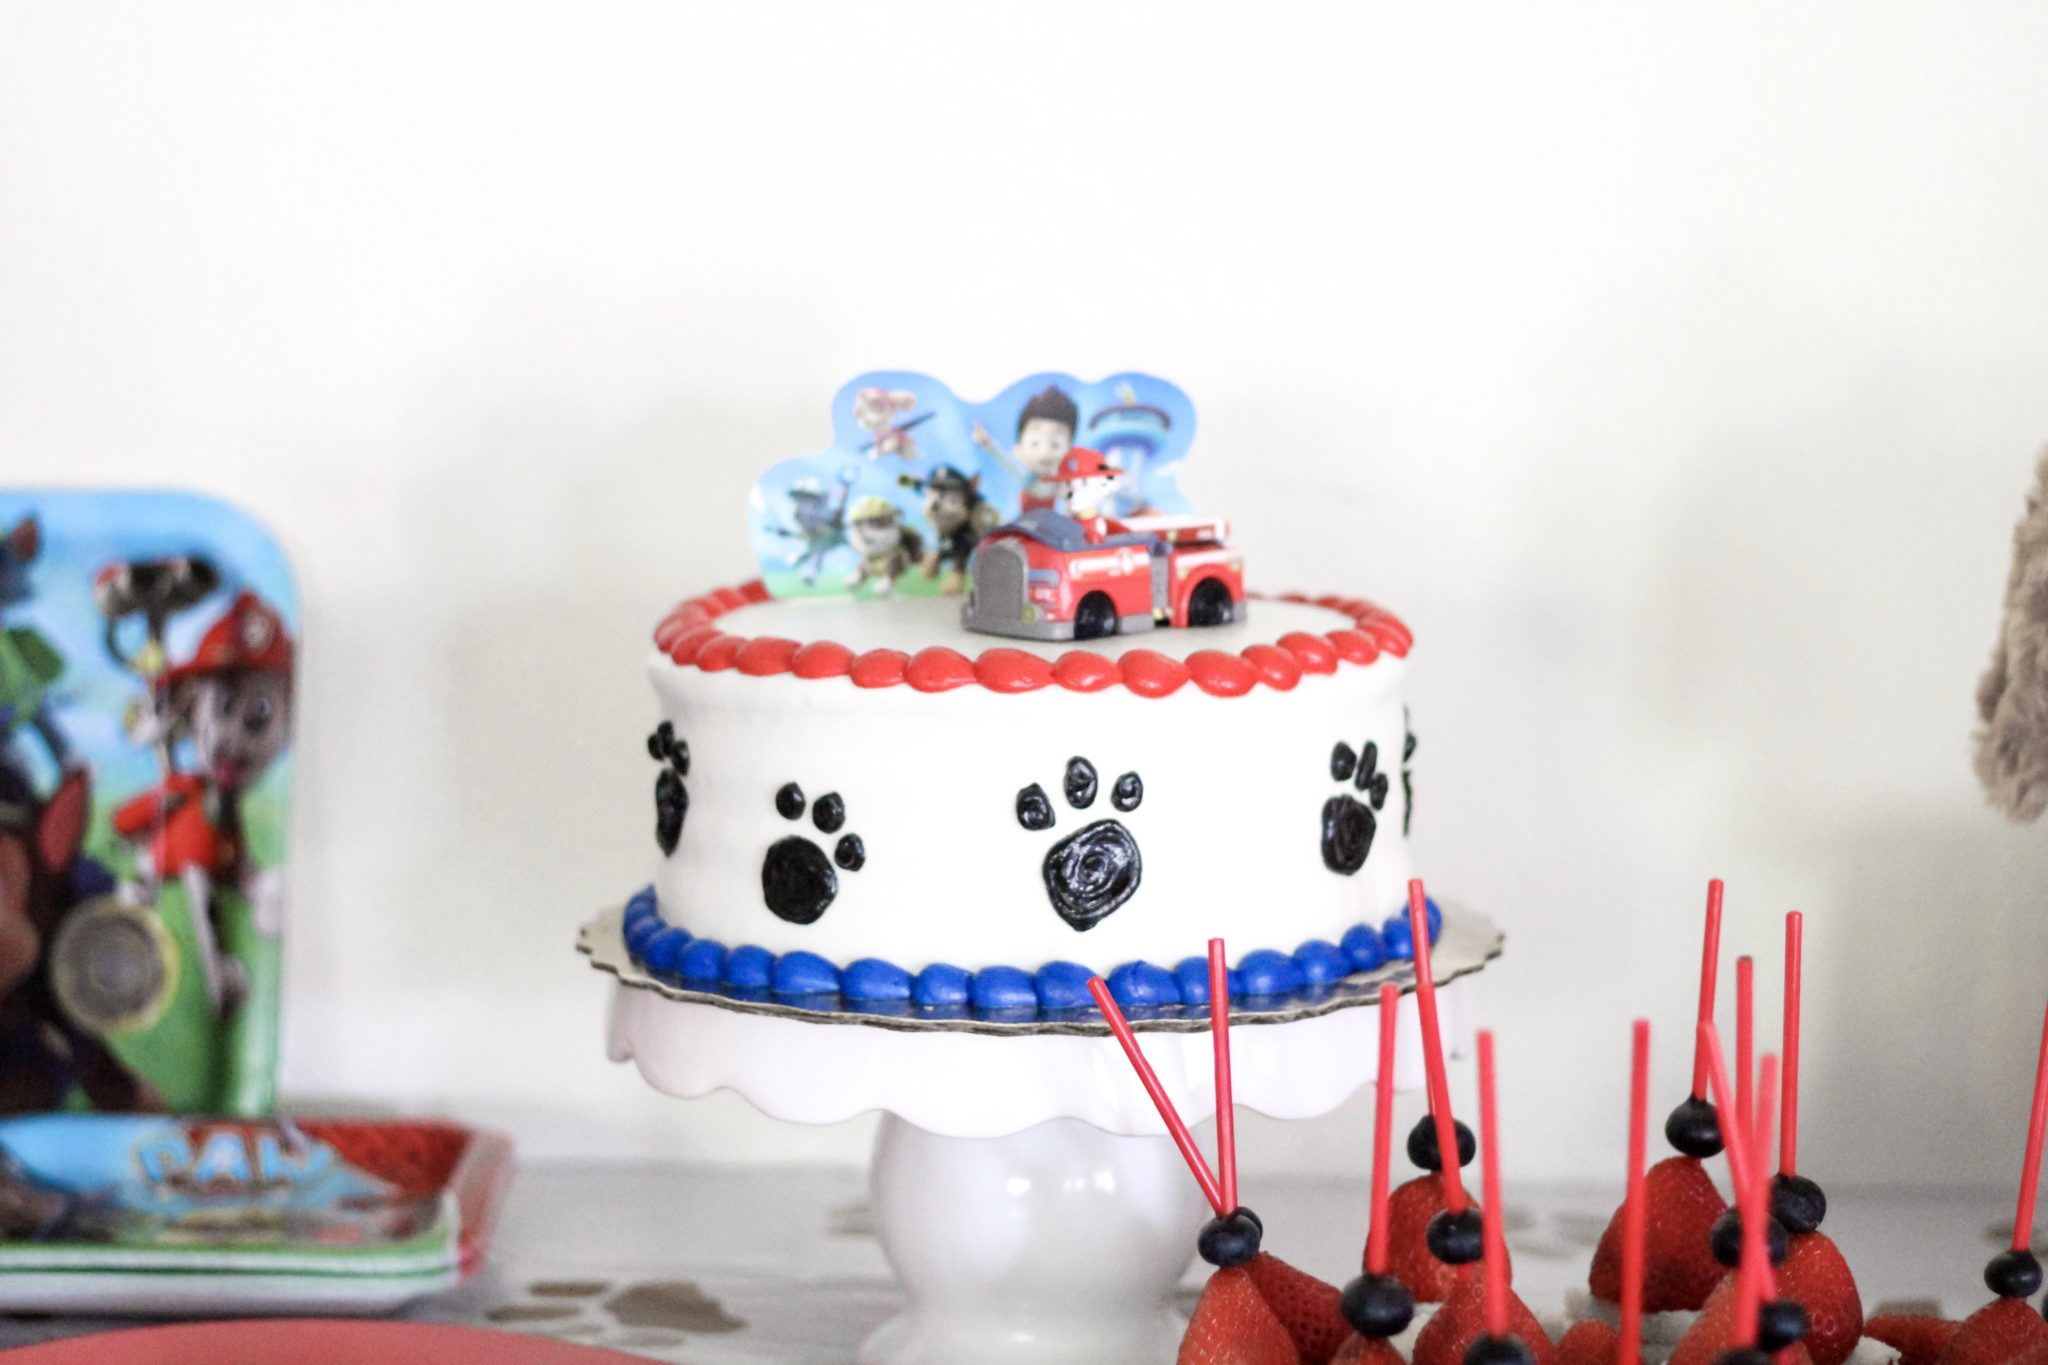 PAW PATROL BIRTHDAY PARTY Crazy Life with Littles